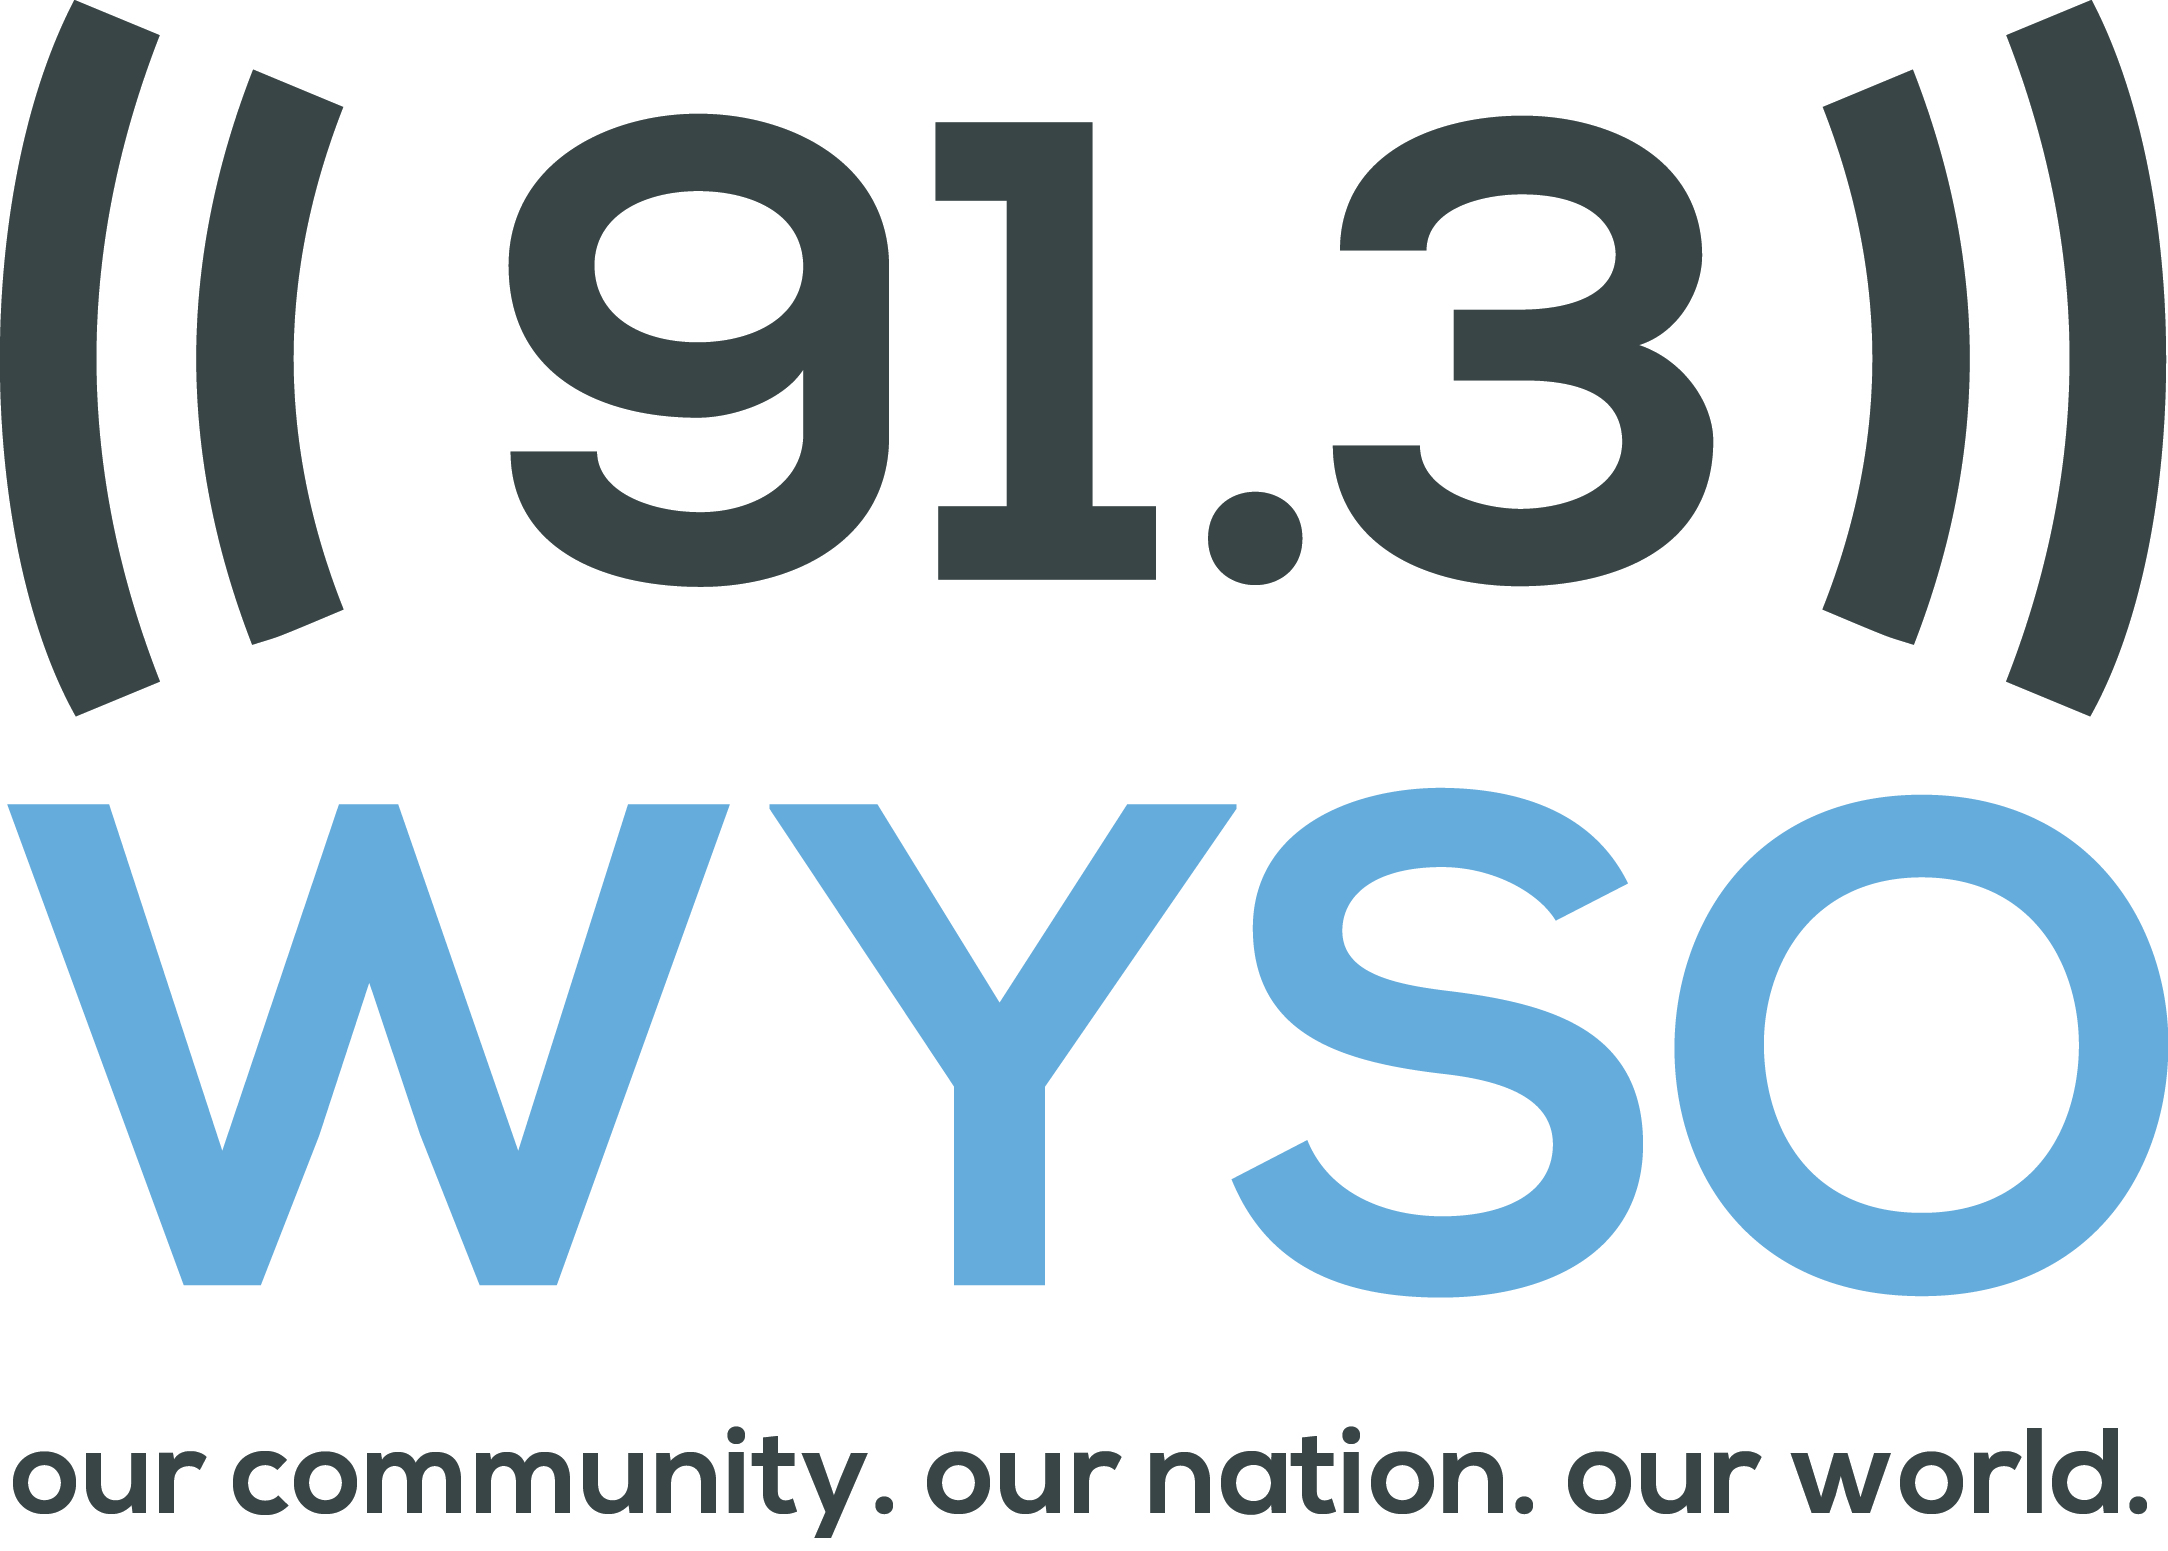 WYSO LOGO stacked 3